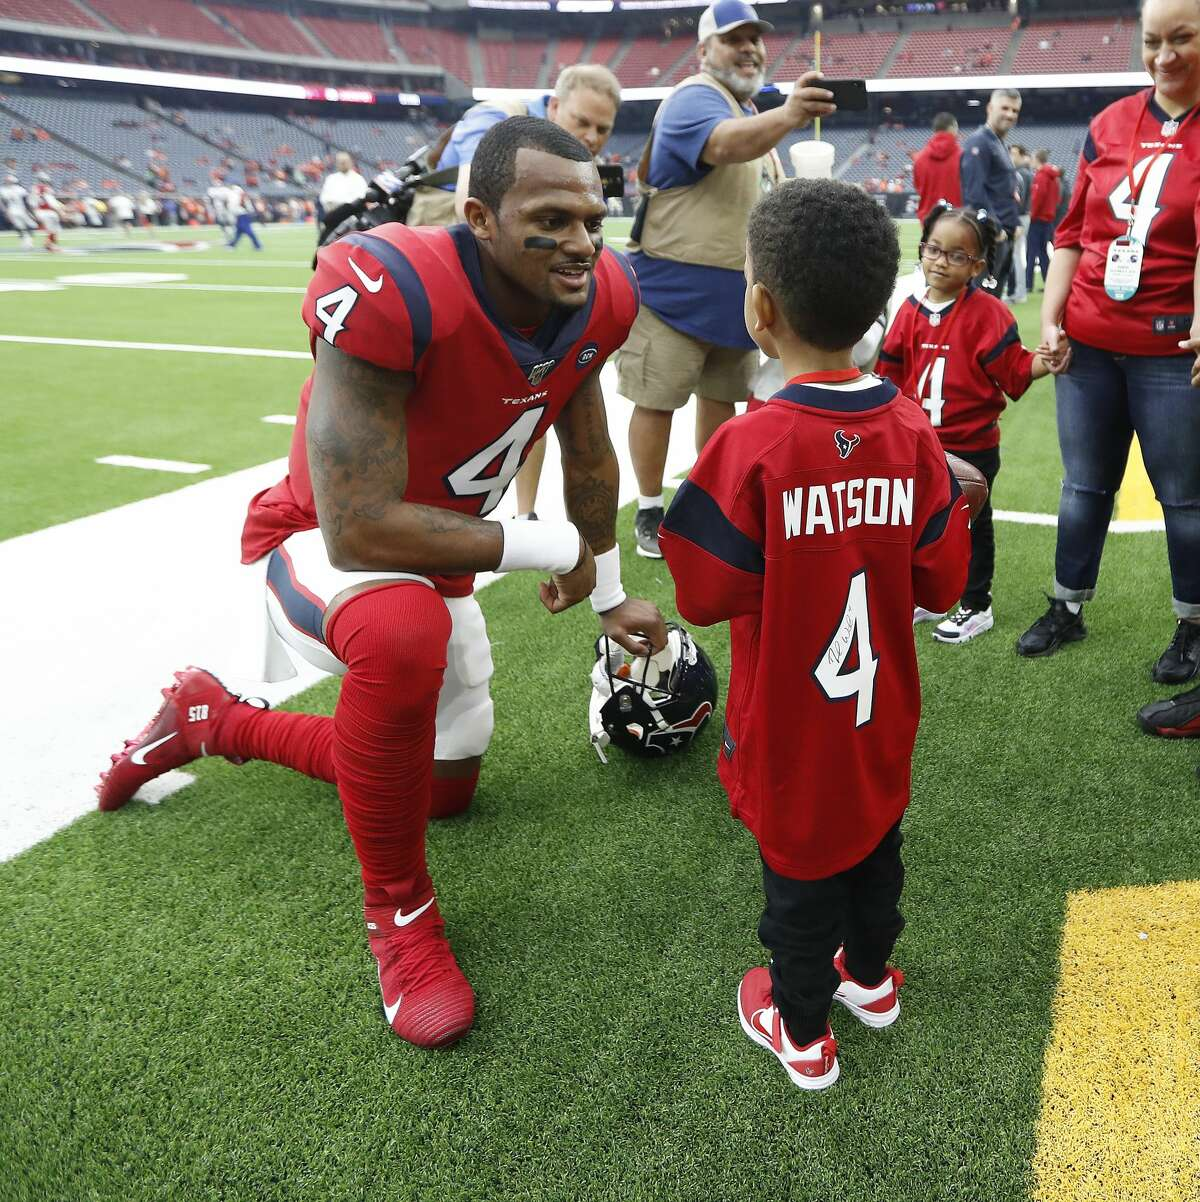 PHOTOS: A look at Daylon Watkins during pregame warmups Sunday Houston Texans fan Daylon Watkins, 7, talks with Texans quarterback Deshaun Watson before an NFL football game against the Denver Broncos at NRG Stadium on Sunday, Dec. 8, 2019, in Houston. Watkins comes to the game through the Make-A-Wish Foundation. Watkins has been diagnosed with Severe Aplastic Anemia and has spent the past couple days visiting with Texans quarterback Deshaun Watson and the rest of the Texans. Browse through the photos above for a look at Daylon Watkins talking to Texans players before Sunday's game ...